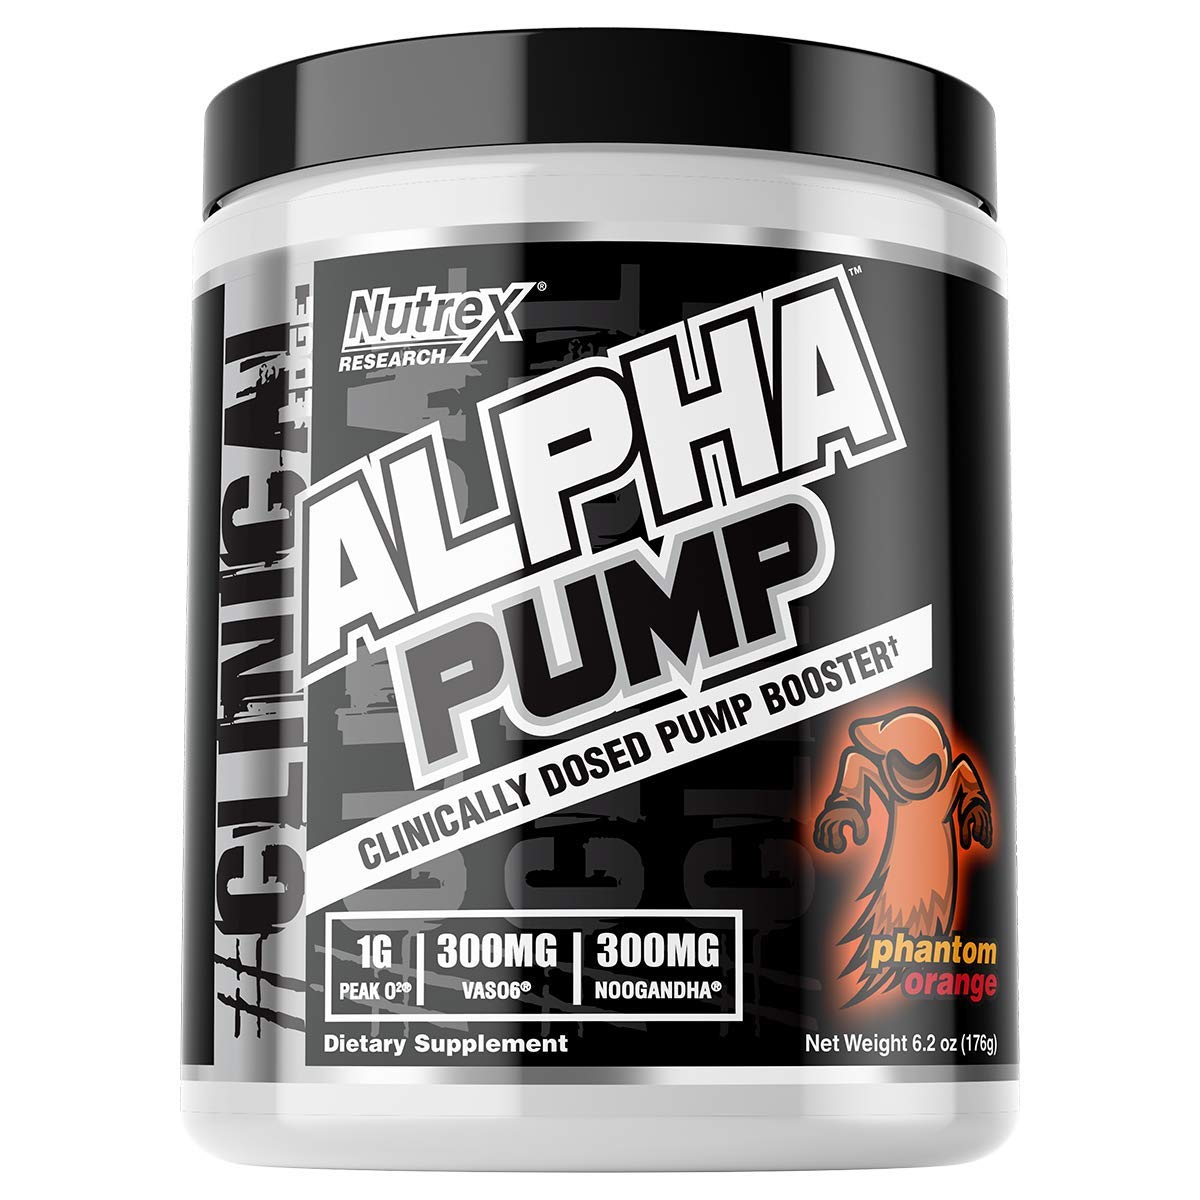 Nutrex Research Alpha Pump Clinically Dosed Pump Booster Peak02, GlycerSize, NooGandha, Vaso6, S7 20 Servings Phantom Orange